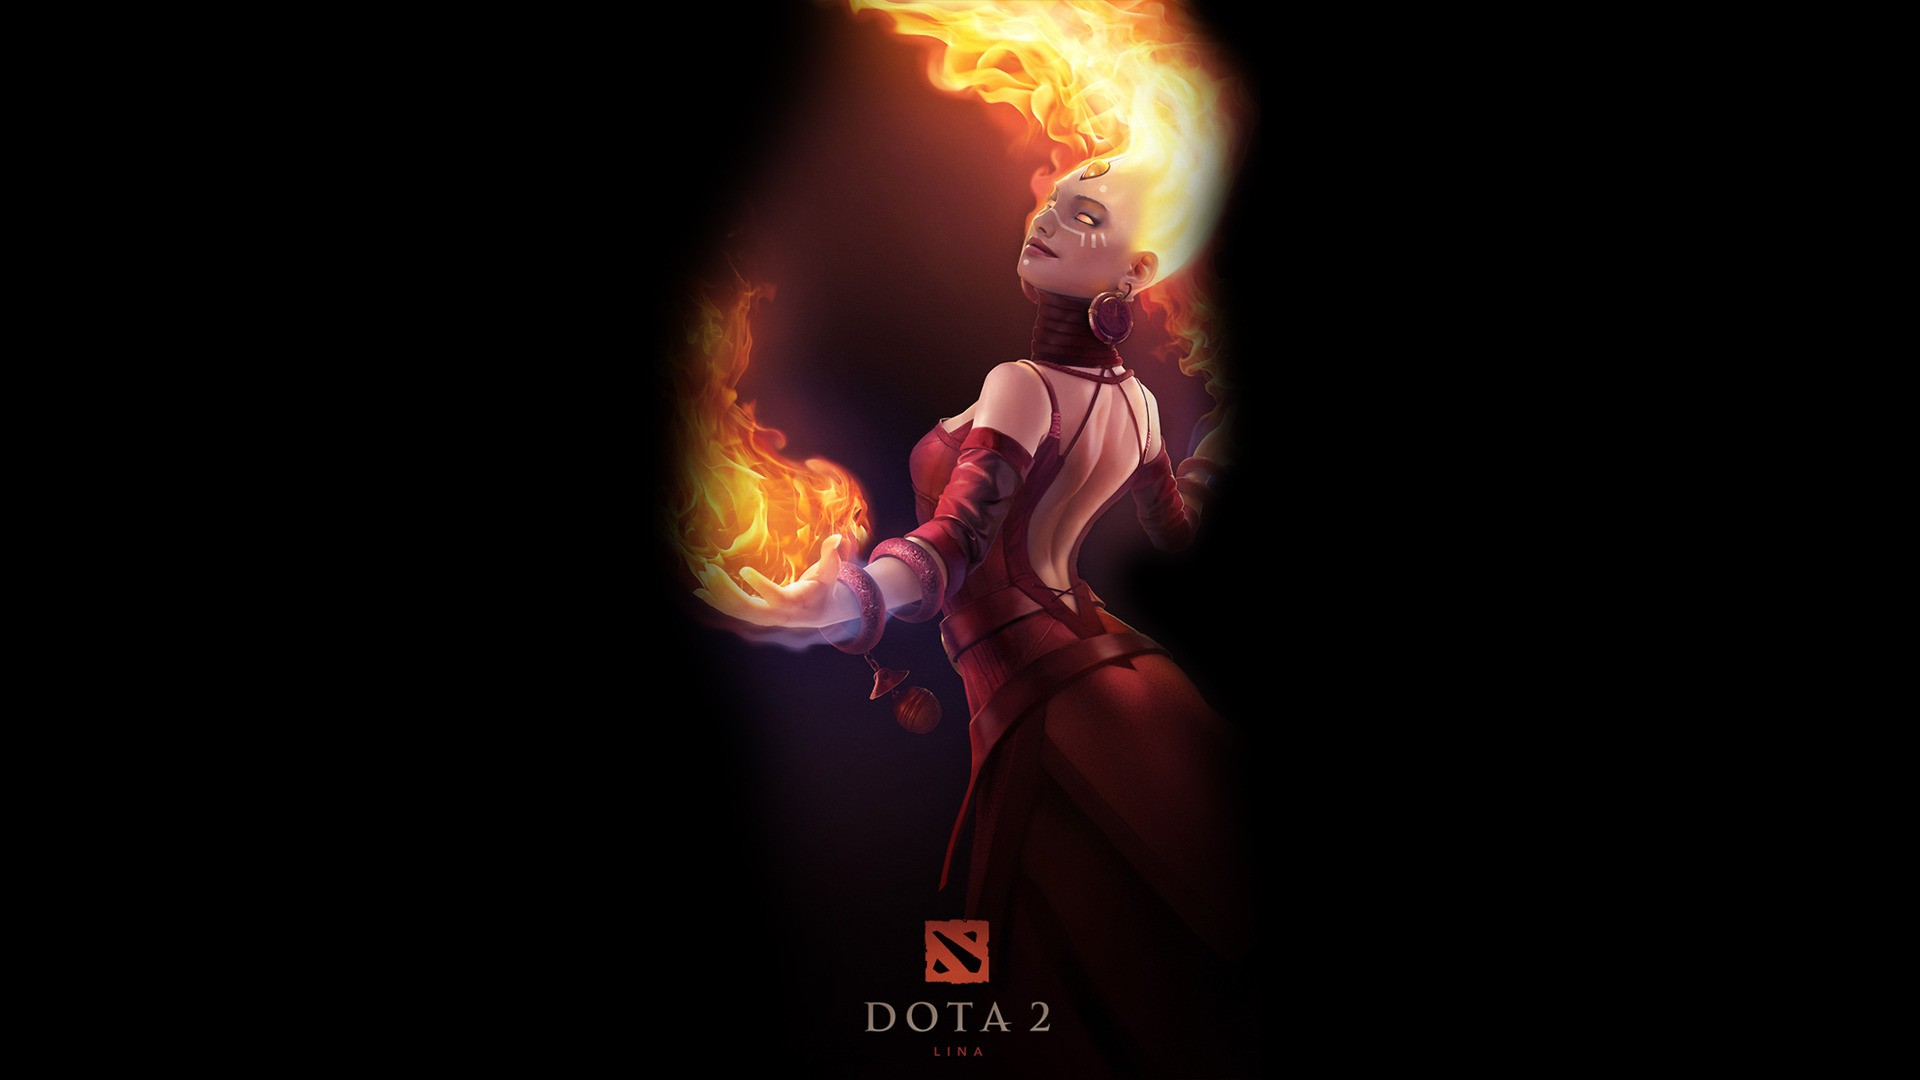 480x854 dota 2 latest android one hd 4k wallpapers images